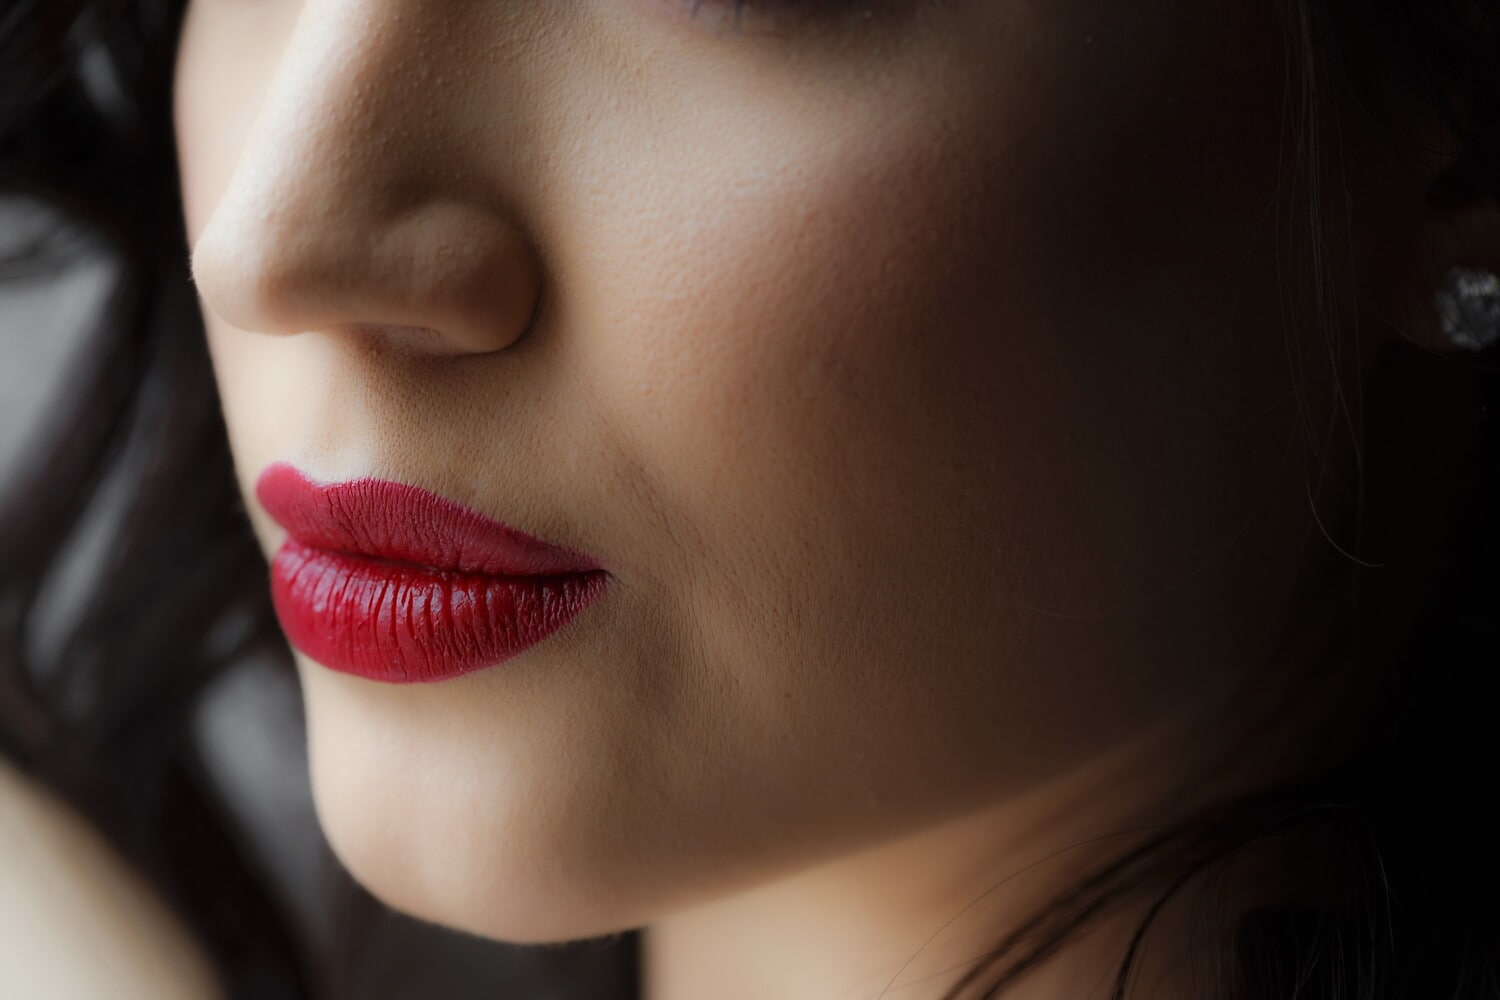 mouth, lady, lipstick, lips, woman, close-up, nose, hair, skin, facial